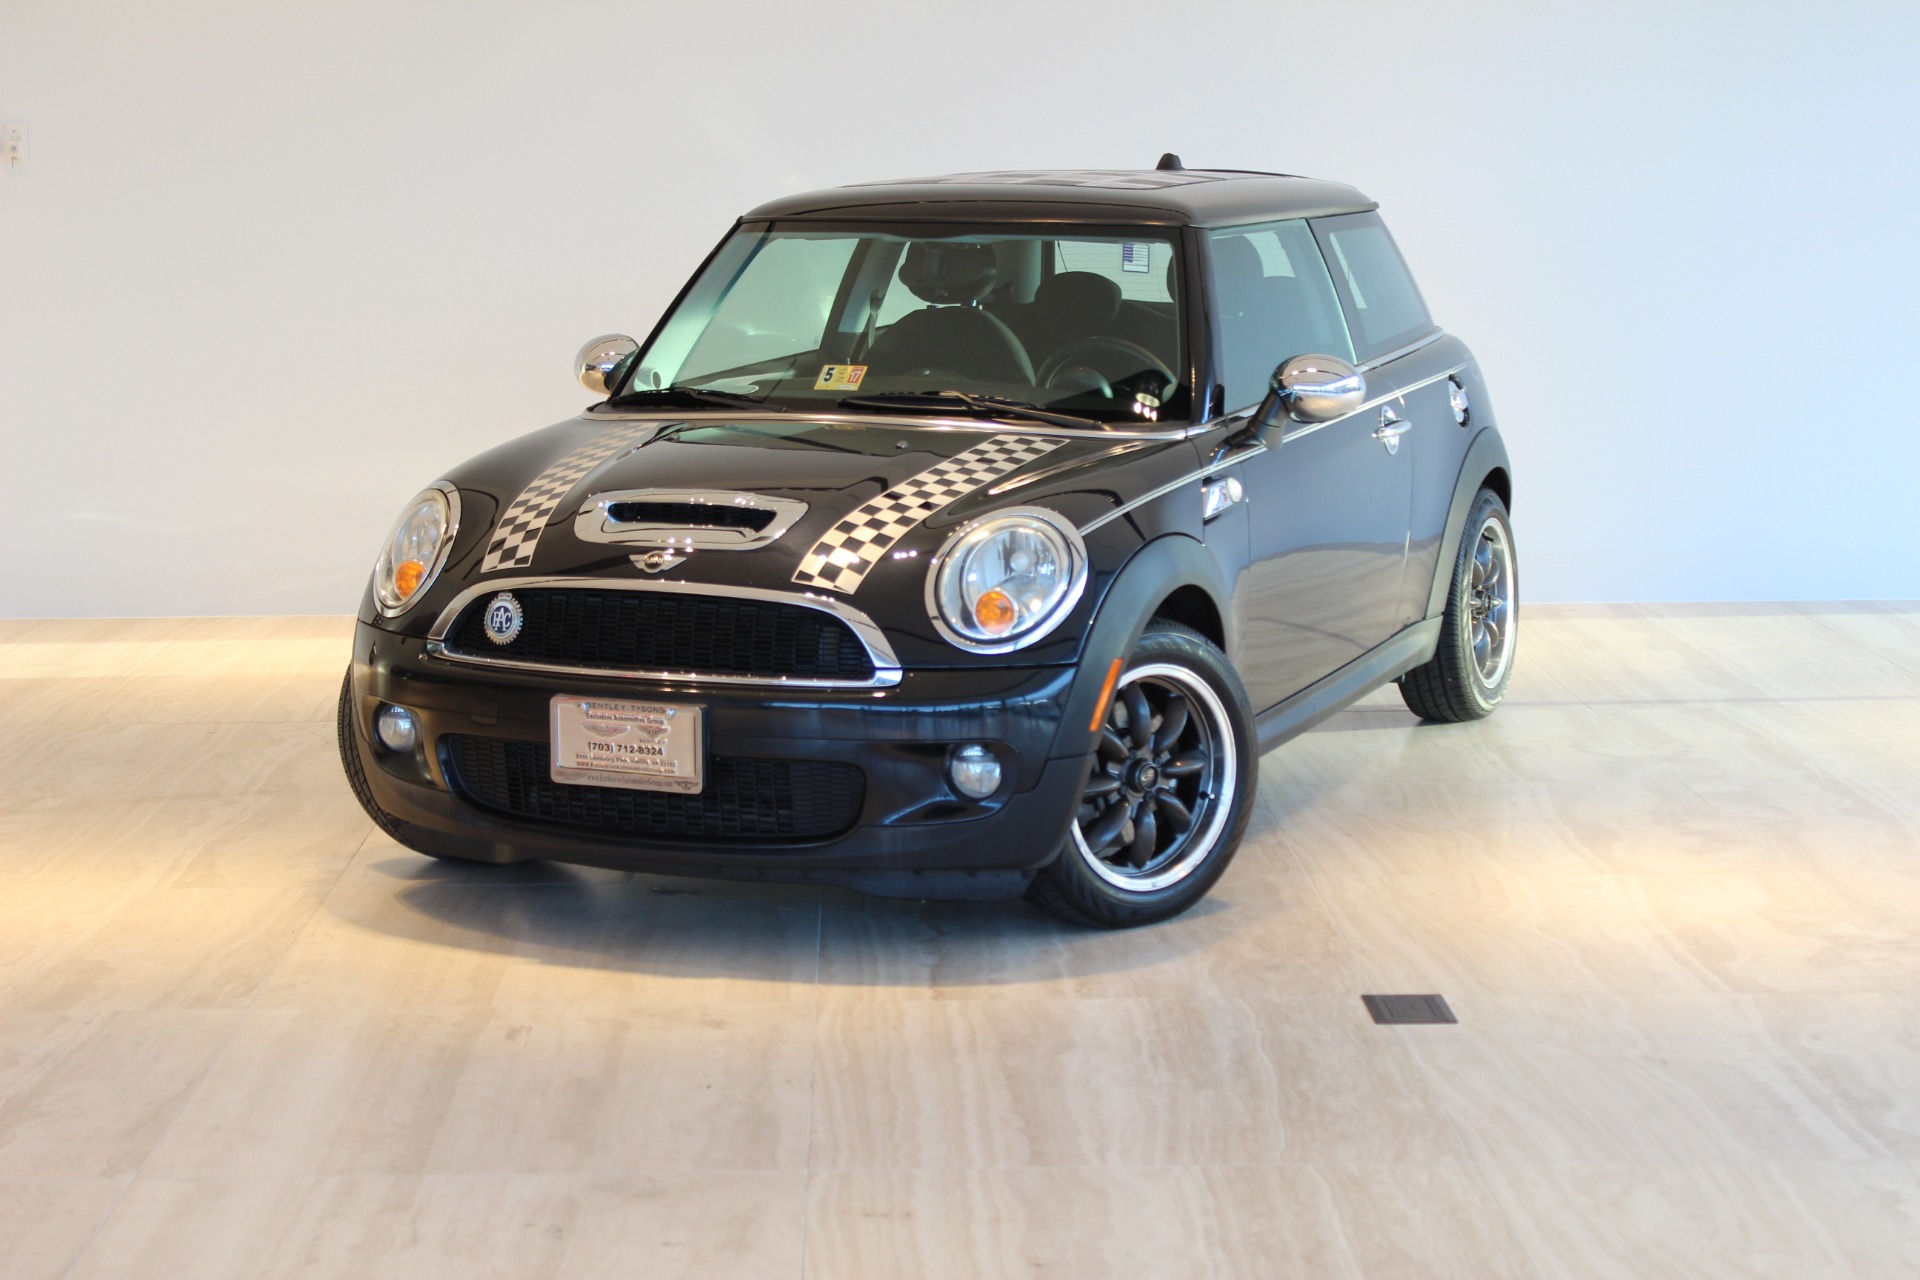 2007 mini cooper s stock pt80524 for sale near vienna va va mini dealer for sale in vienna. Black Bedroom Furniture Sets. Home Design Ideas